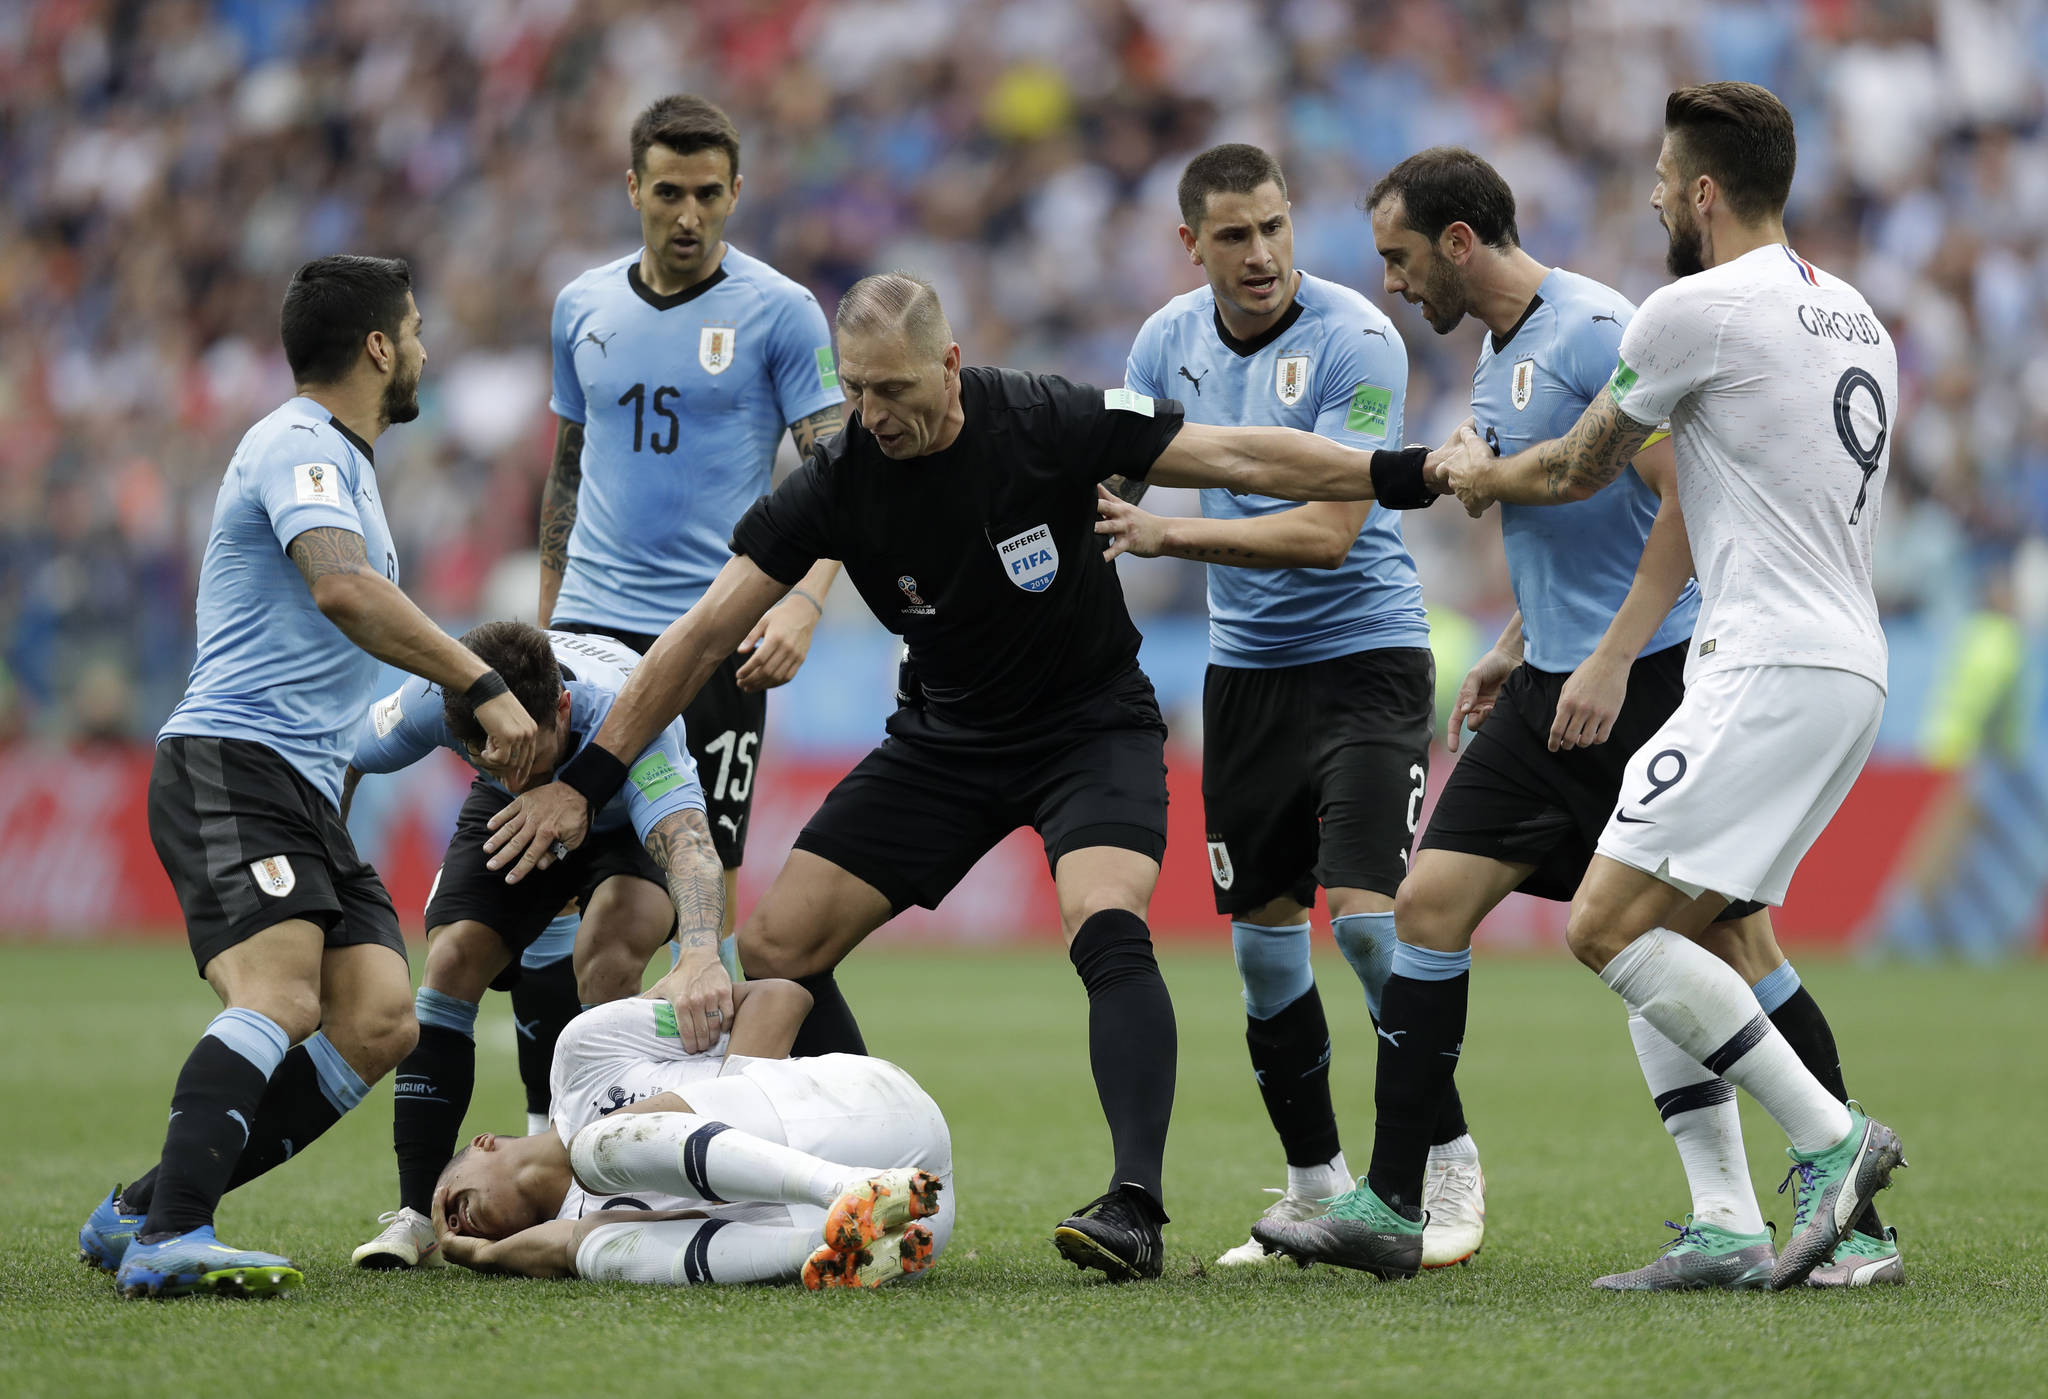 Uruguay players protest to referee Nestor Pitana of Argentina that France's Kylian Mbappe, on the ground, is overreacting after taking a dive during the quarterfinal match between Uruguay and France at the 2018 soccer World Cup in the Nizhny Novgorod Stadium, in Nizhny Novgorod, Russia, Friday, July 6, 2018. (AP Photo/Natacha Pisarenko) <저작권자(c) 연합뉴스, 무단 전재-재배포 금지>